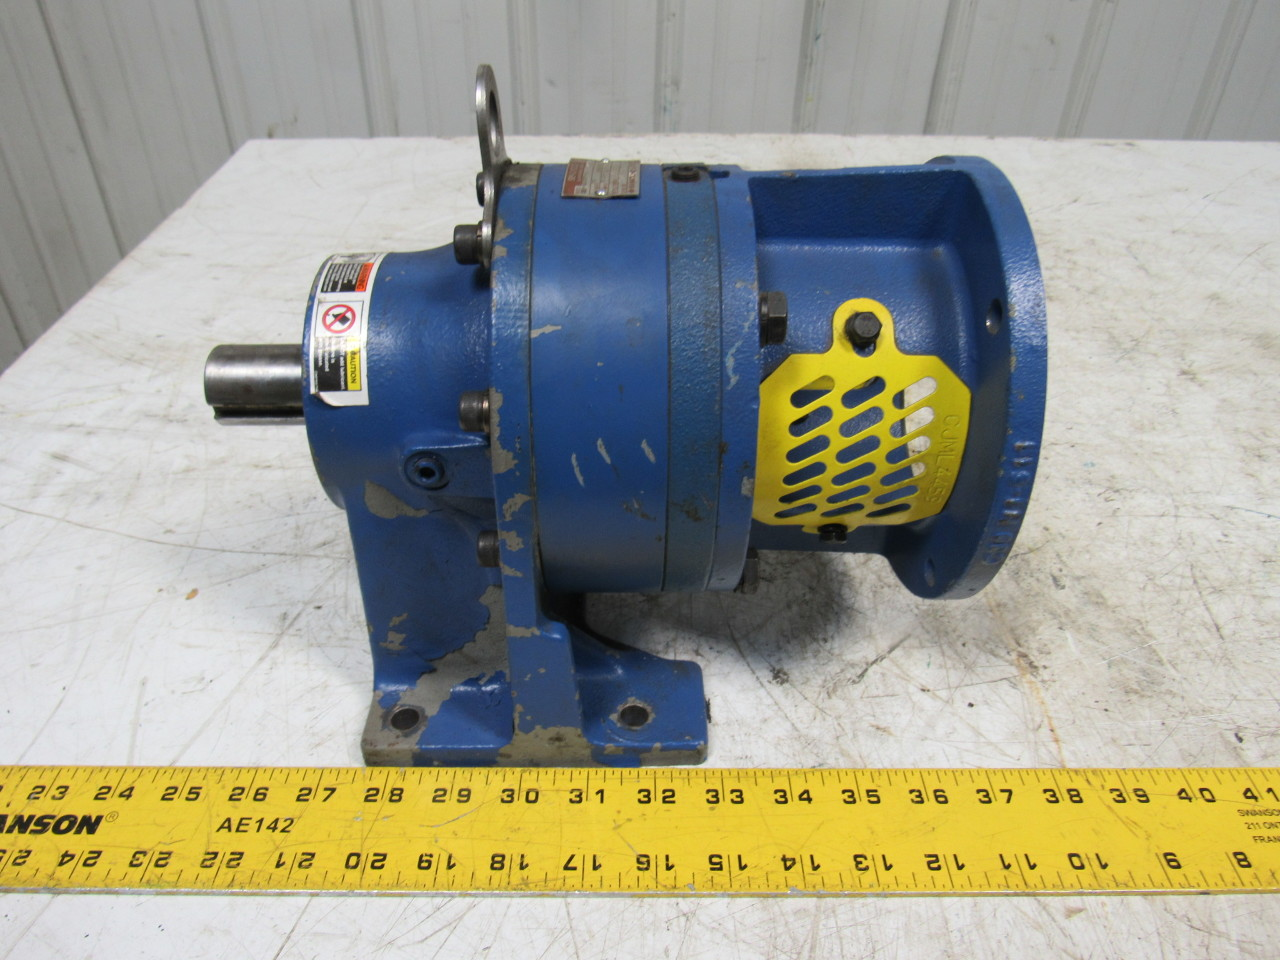 Sumitomo SM-Cyclo CNH6115Y-29 Inline Gear Reducer 29:1 Ratio 2.98 Hp